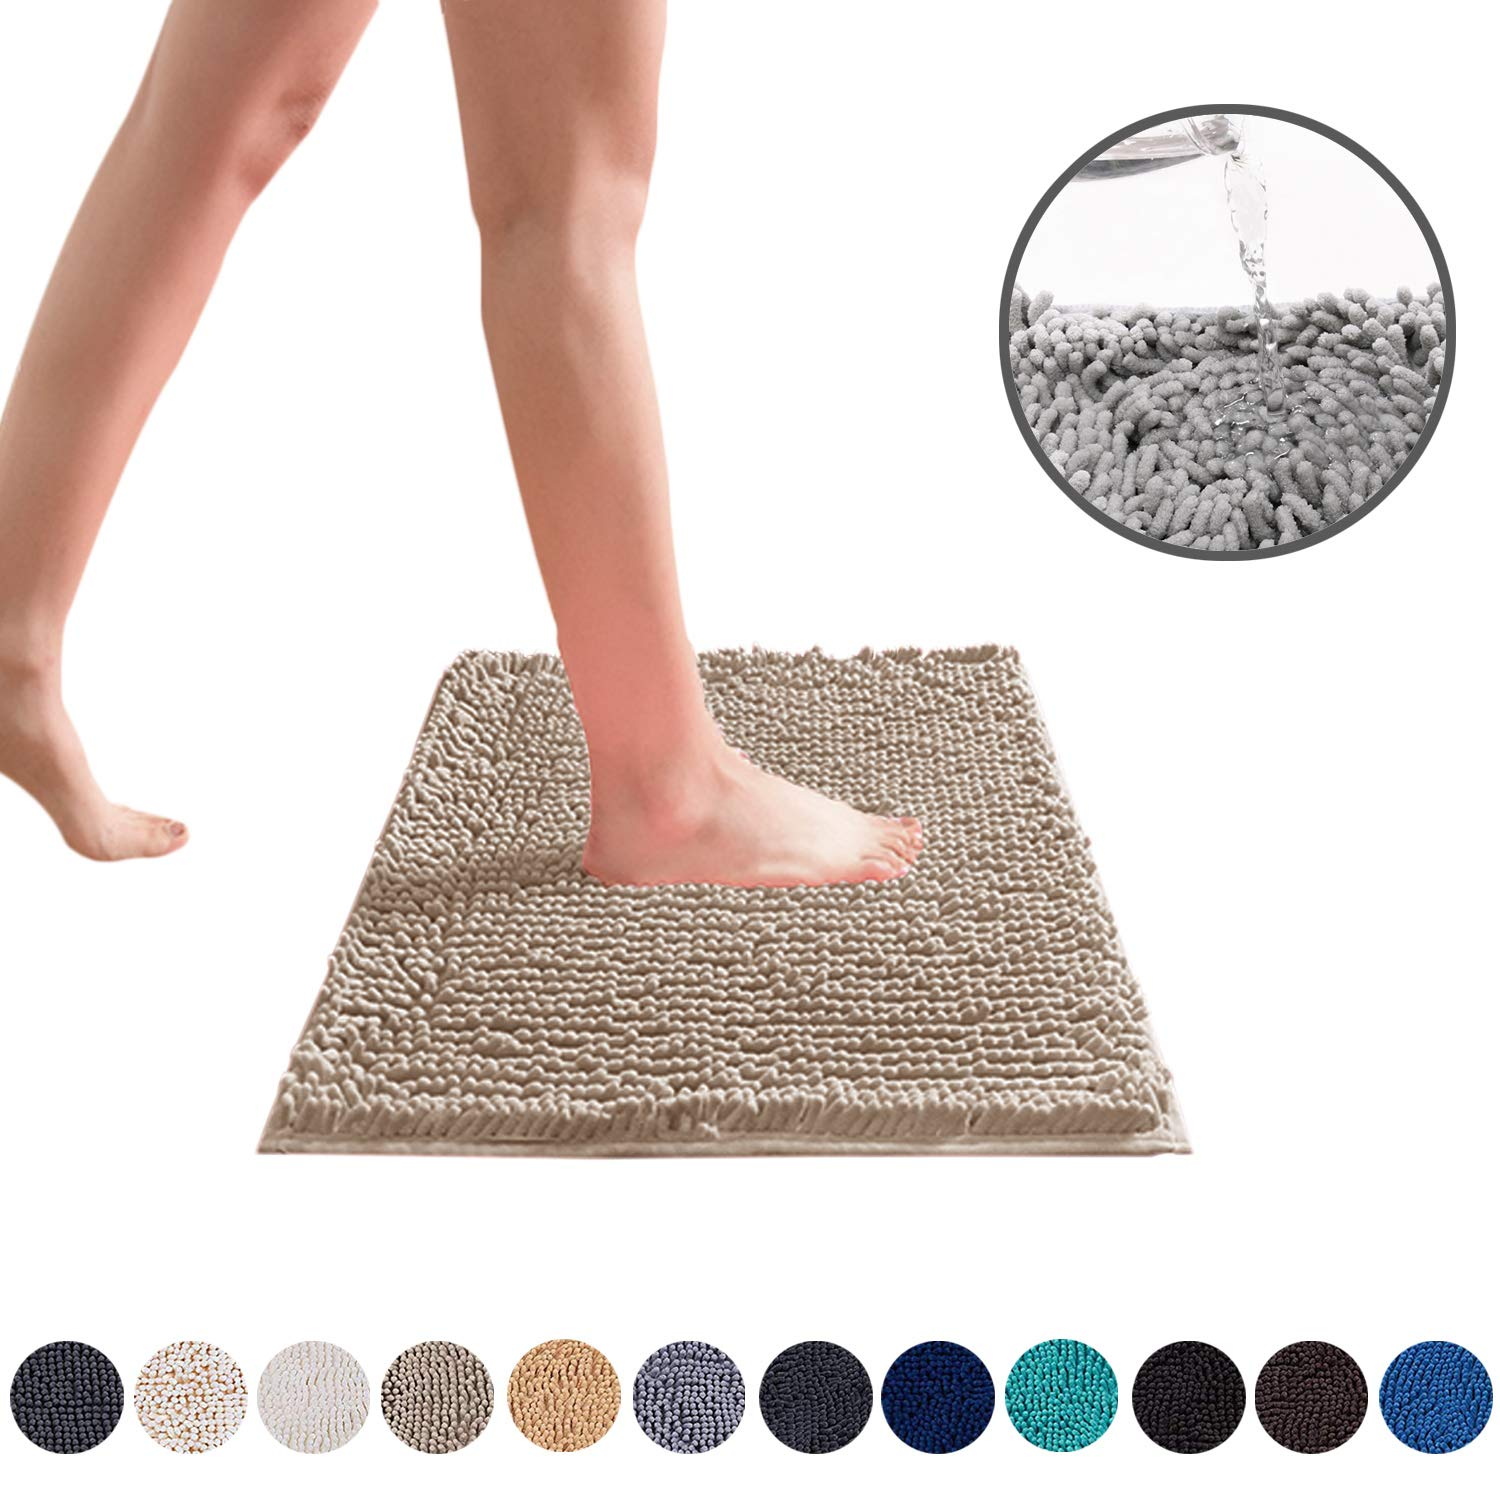 DEARTOWN Non-Slip Shaggy Bathroom Rug,Soft Microfibers Chenille Bath Mat with Water Absorbent, Machine Washable (20x32 Inches, Beige)